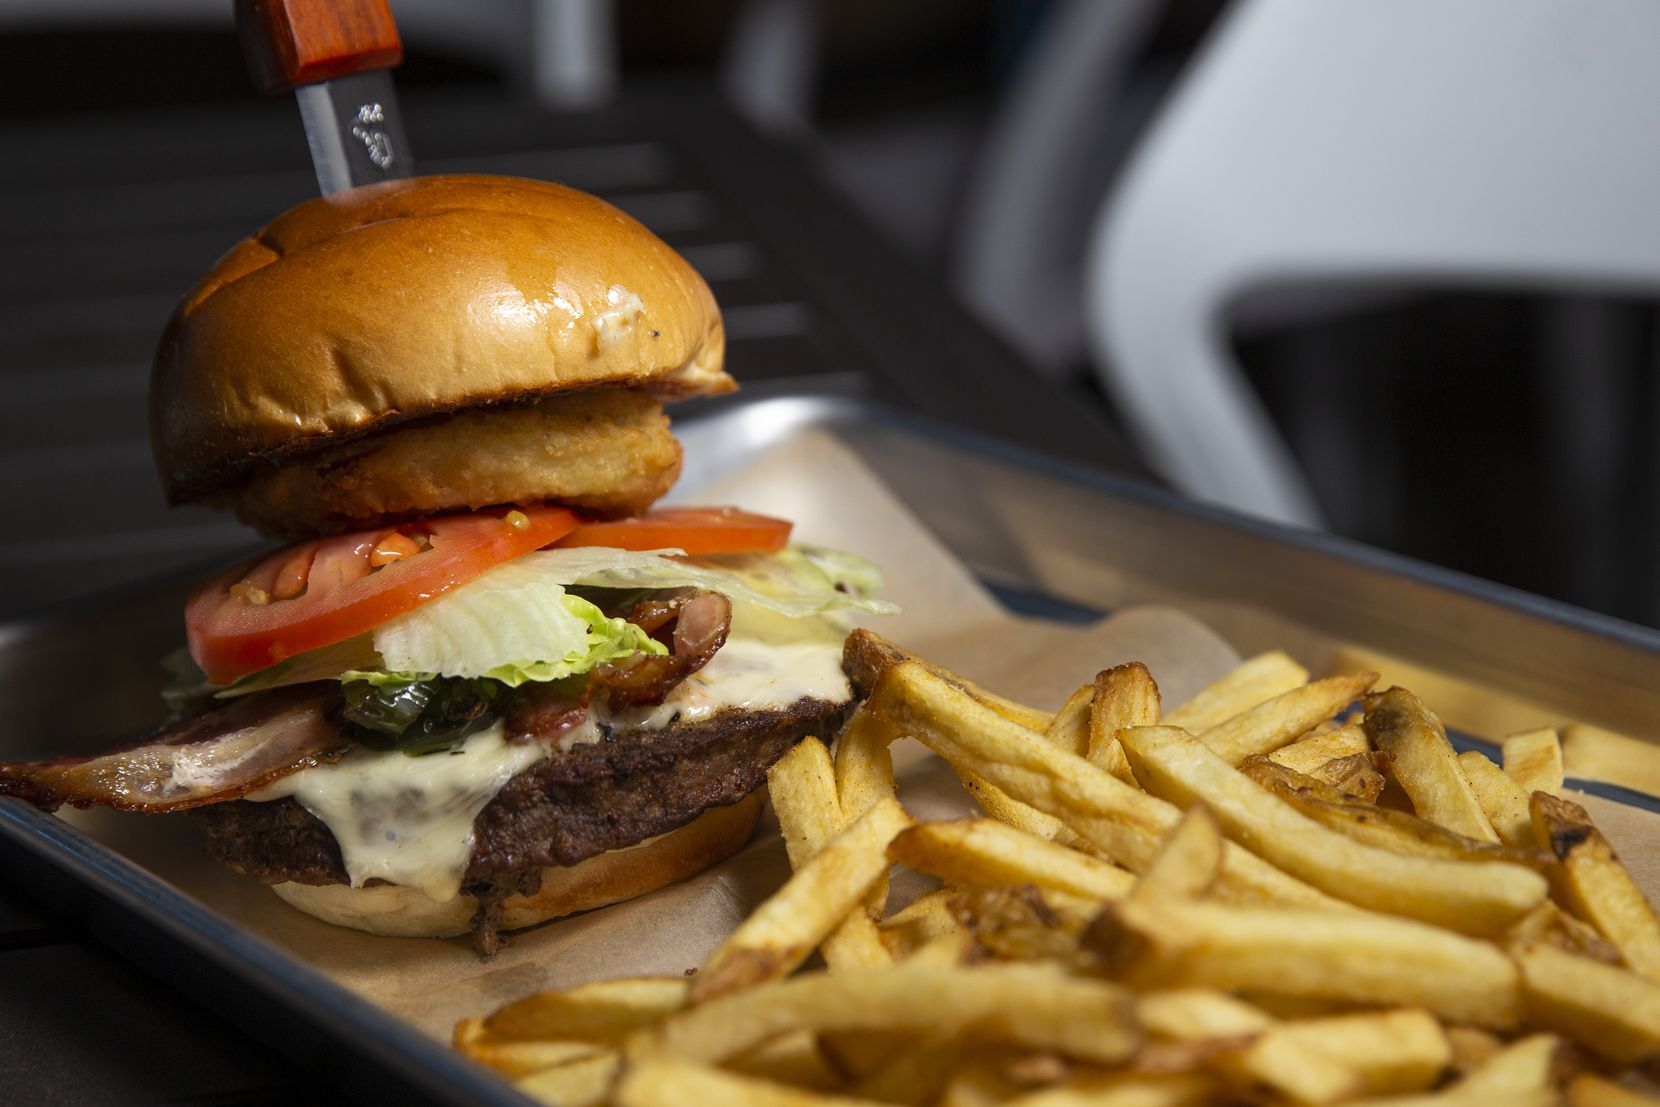 The Lonestar burger from Mudhook comes with the spicy addition of jalapenos. Mudhook's sandwich buns come from Village Baking Co., a company in Dallas.